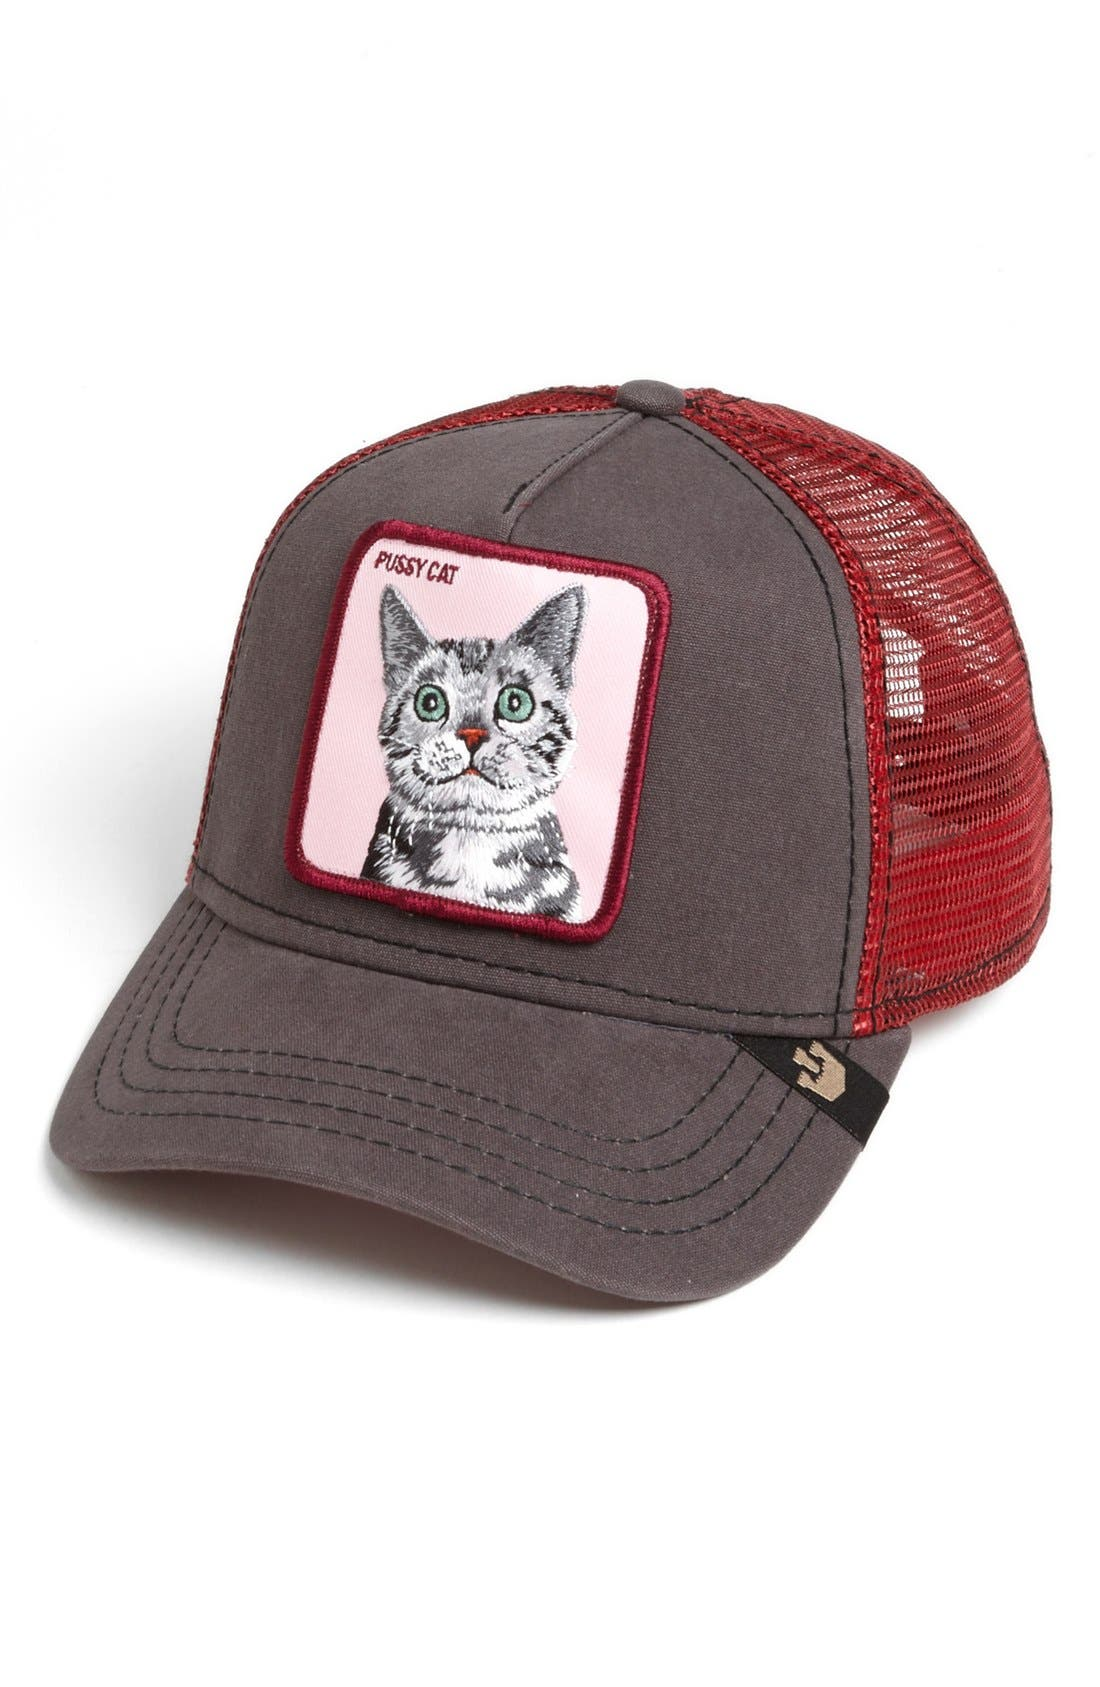 Alternate Image 1 Selected - Goorin Brothers 'Animal Farm - Whiskers Cat' Trucker Hat